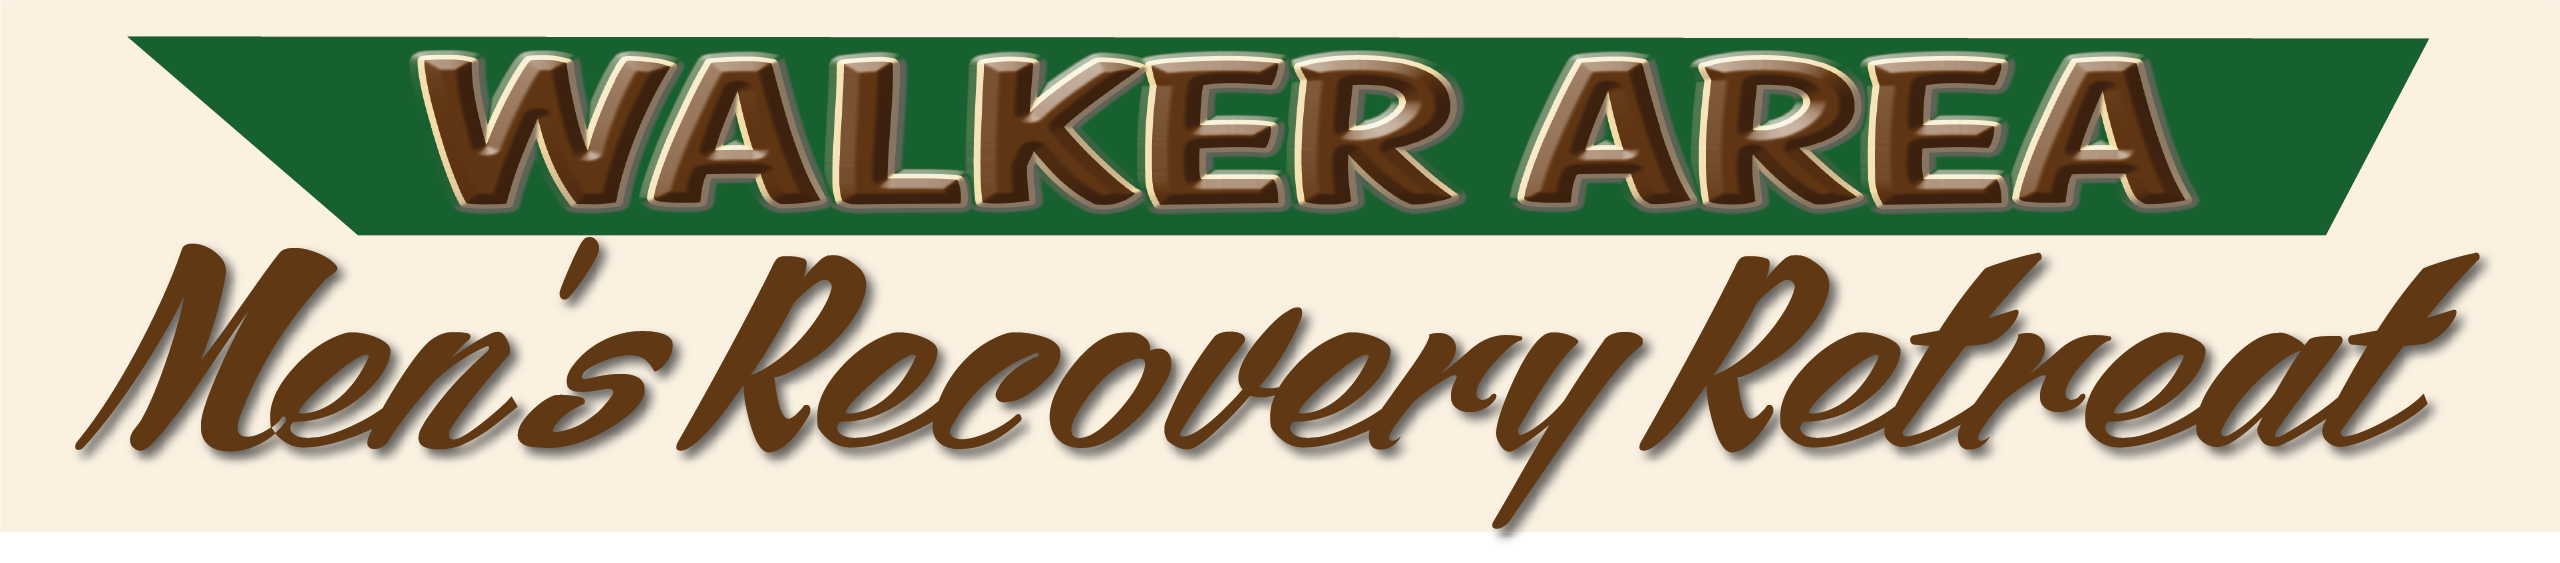 Walker Area Mens Recovery Retreat